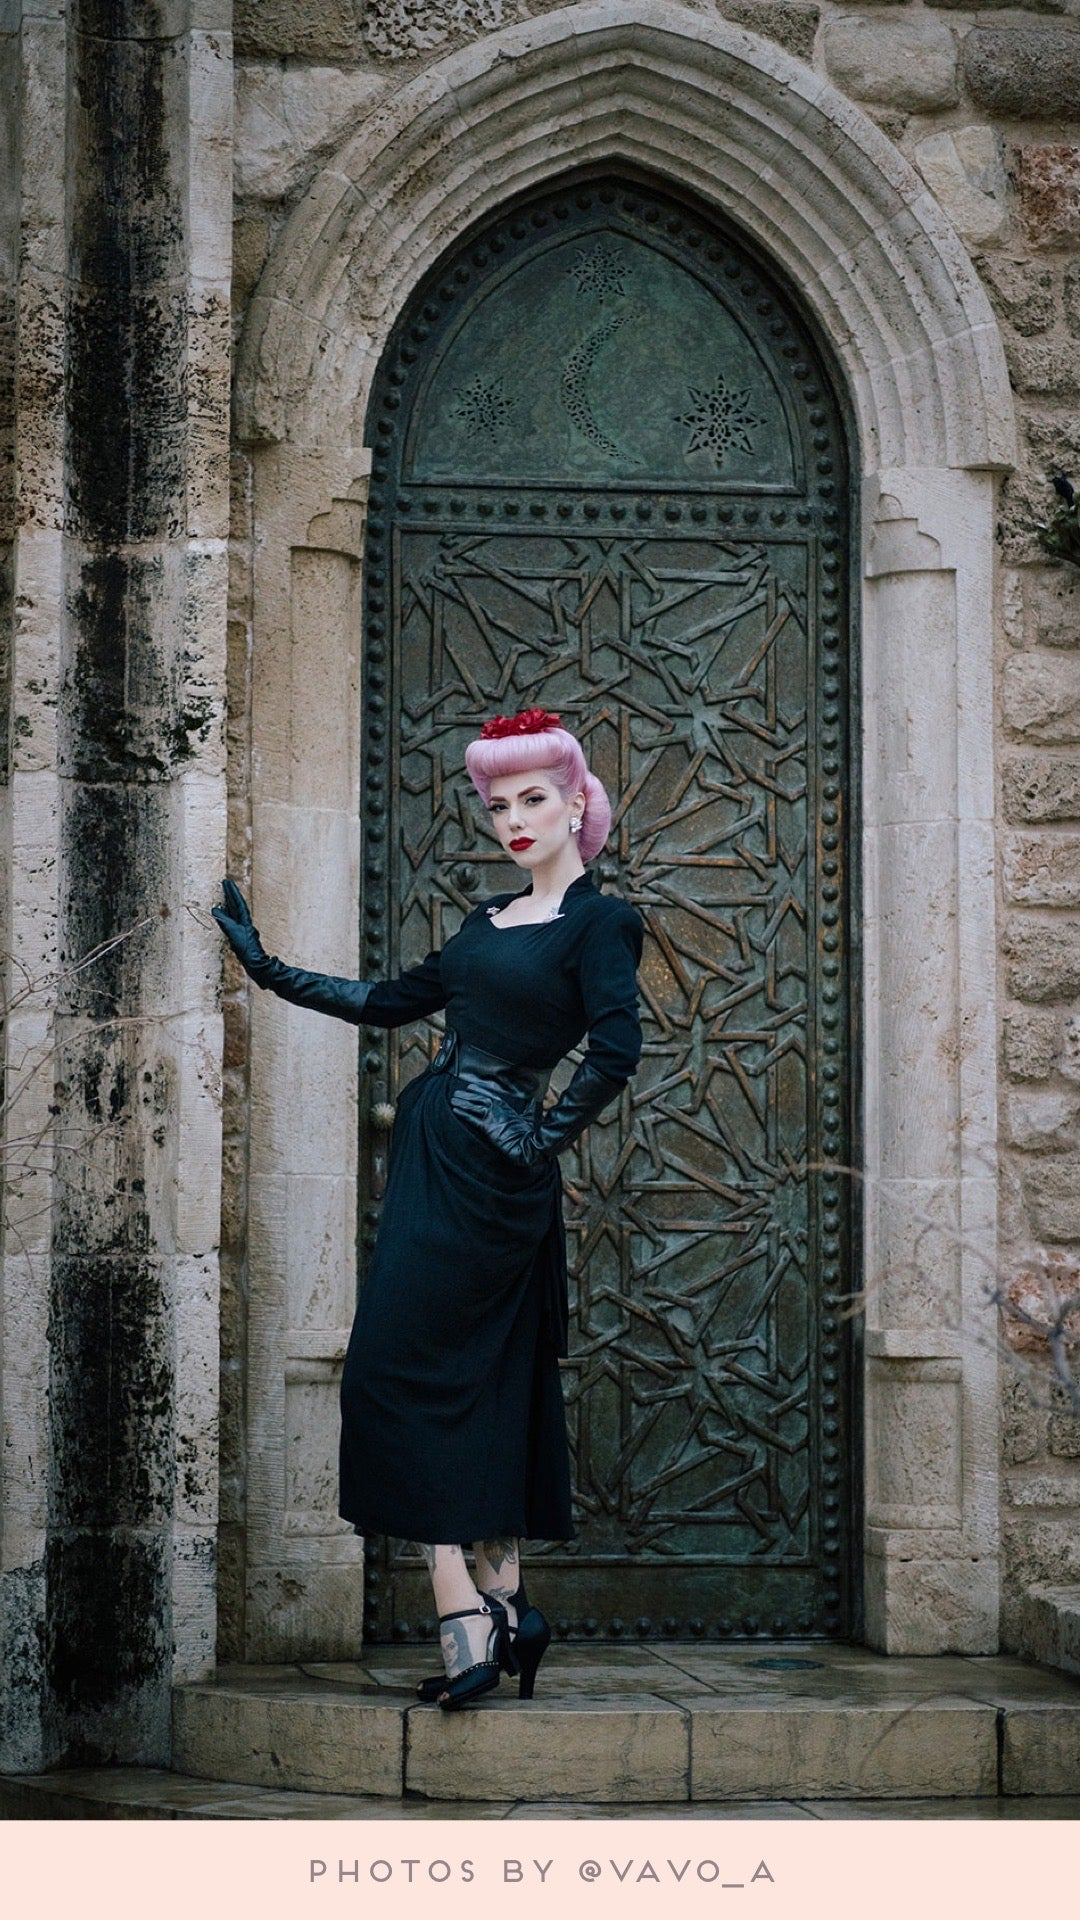 standing in front of an stone & iron doorway in all black Dafna stands balanced on one leg streamlining her figure. behind her the gothic style door towers over Dafna. with one gloved hand resting on the stone doorframe at shoulder height, Dafna stands slightly leaning back with an arm on her hip looking into the camera.  photos by @vavo_a